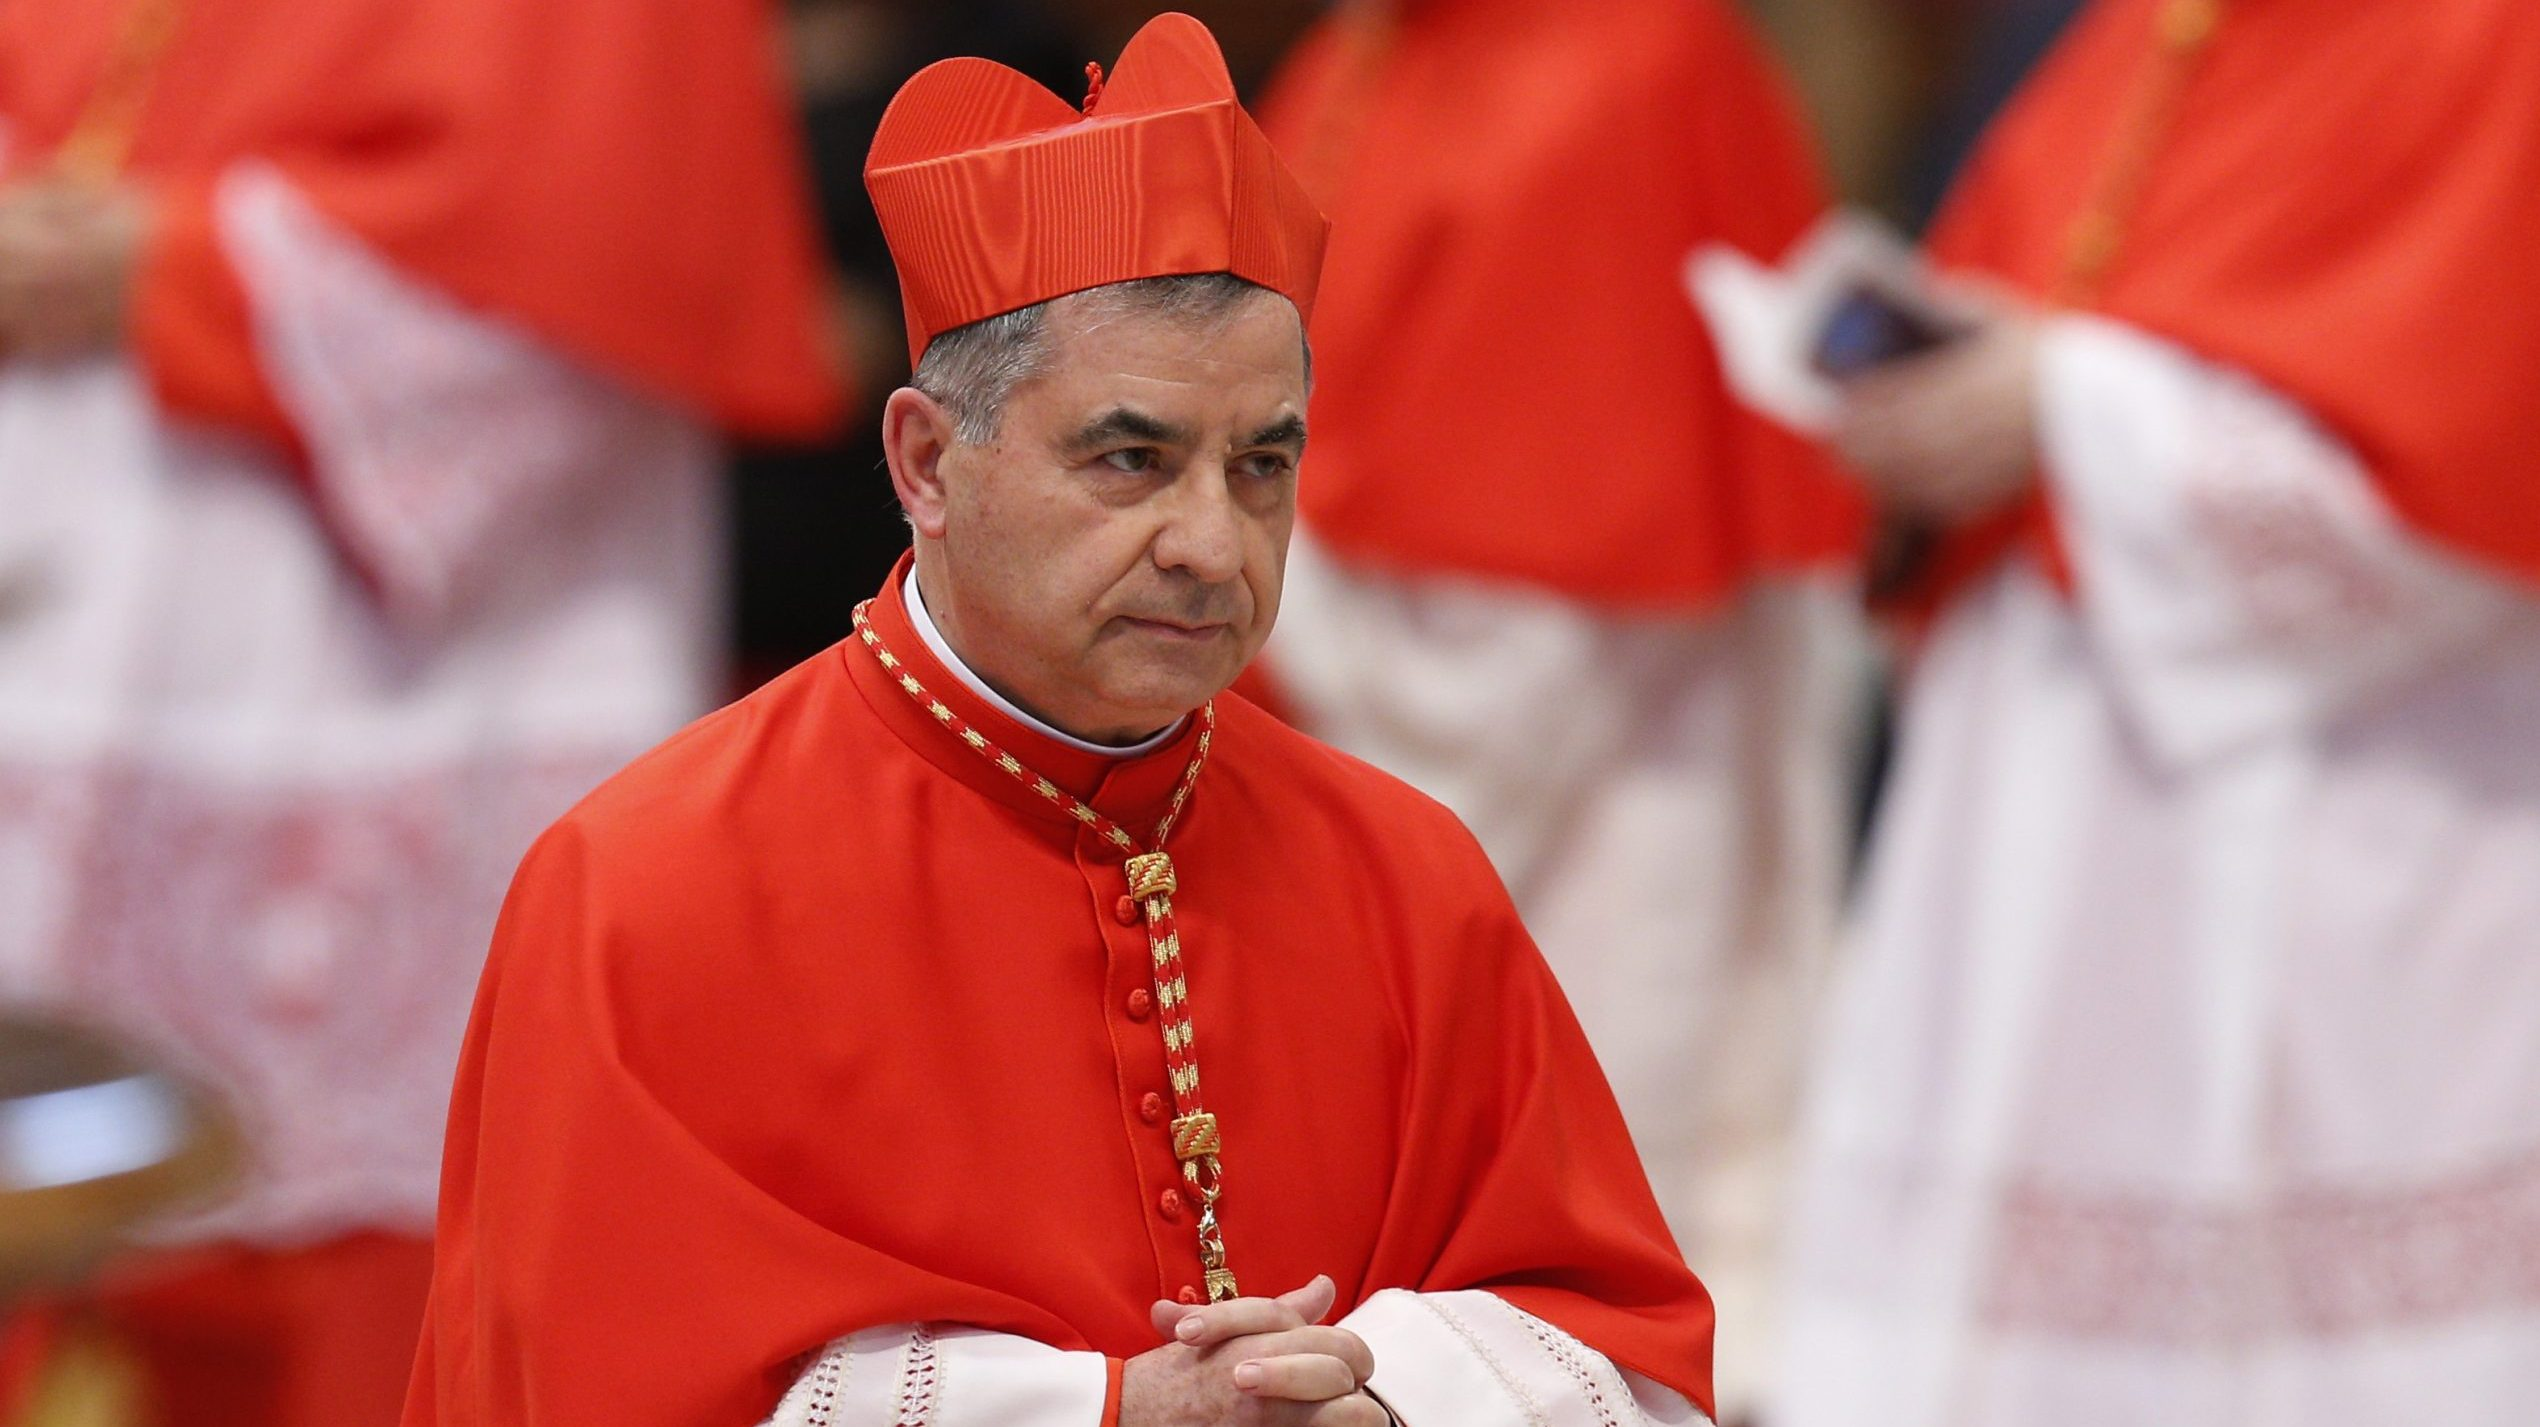 Vatican Cardinal Angelo Becciu resigns from office and 'rights' of  cardinals   Angelus News